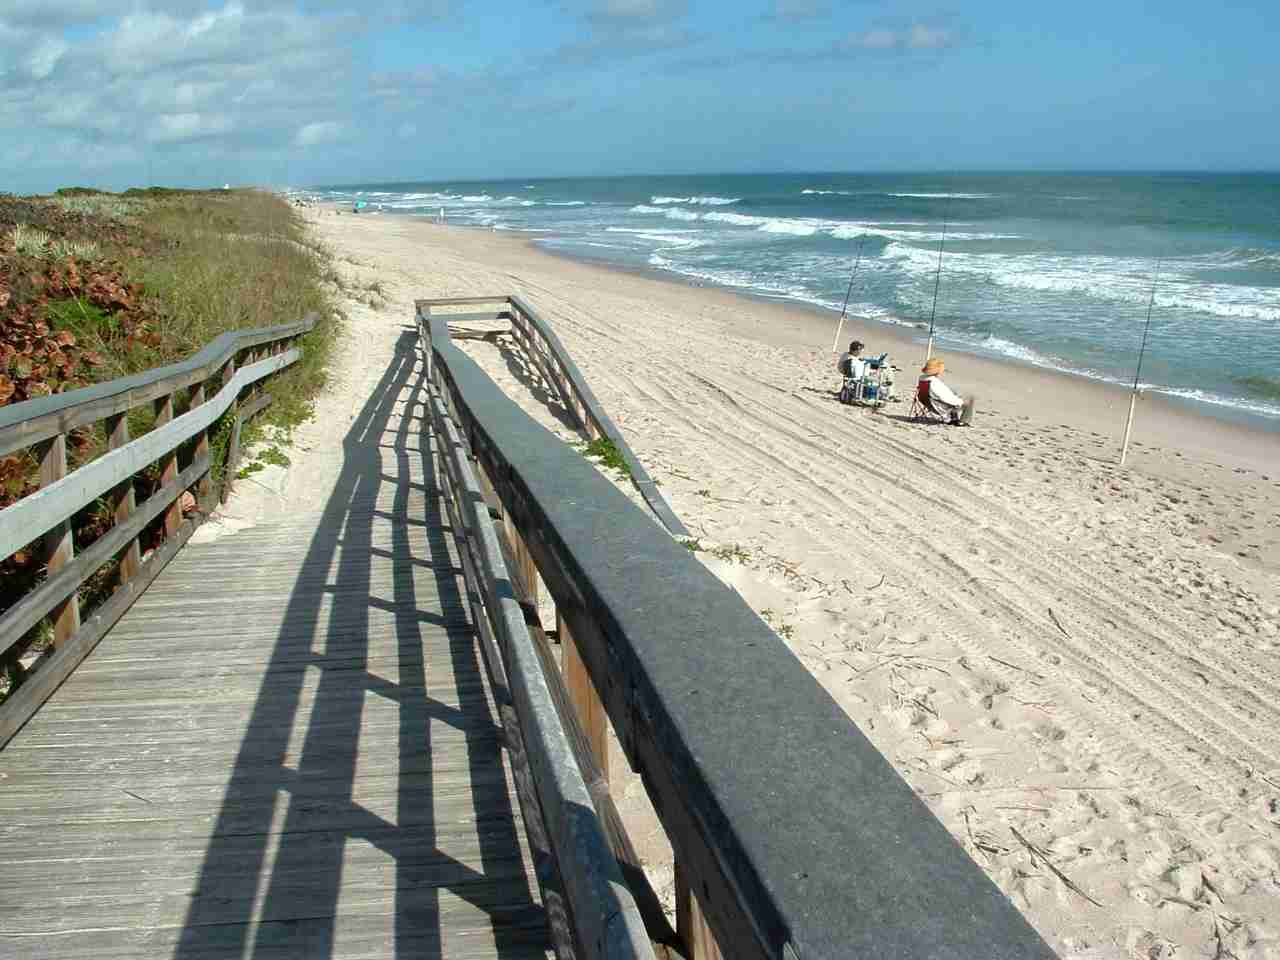 Playalinda Beach - Canaveral National Seashore - Florida